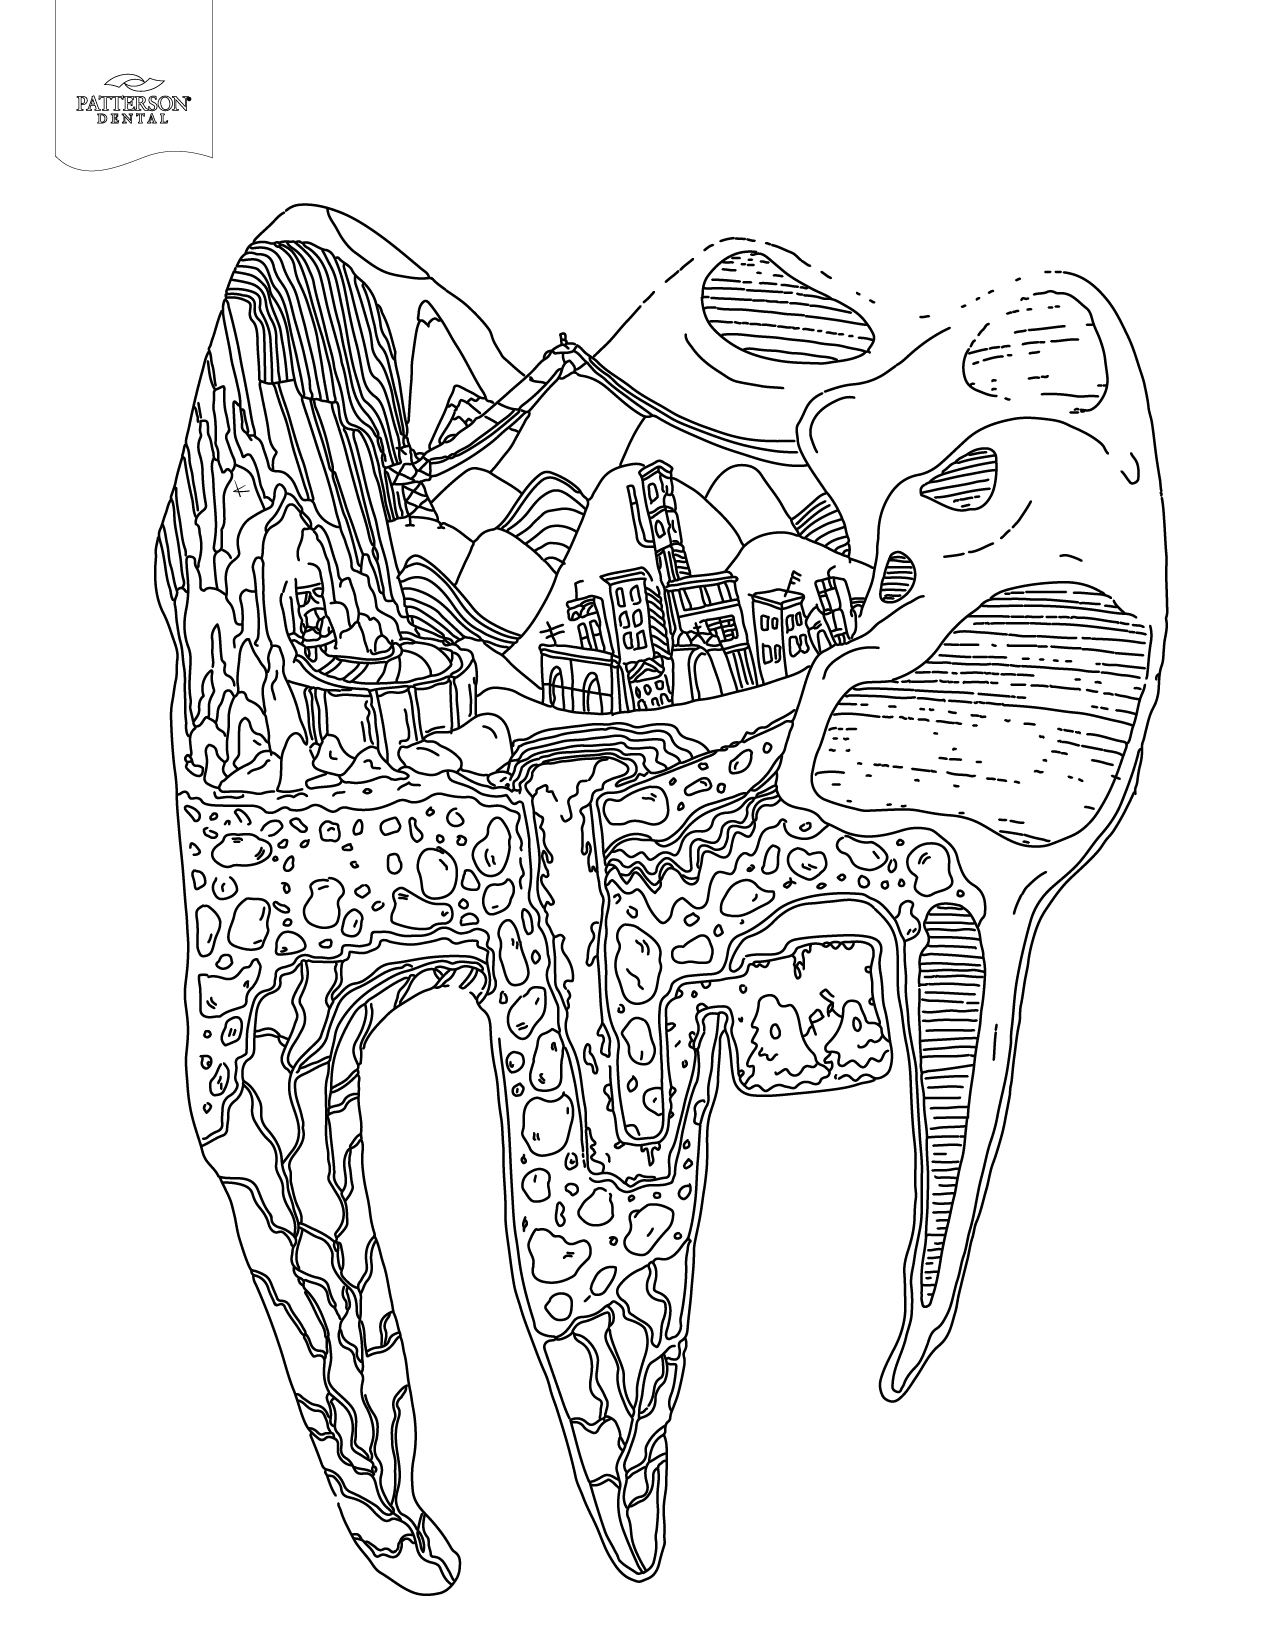 colering pages 10 toothy adult coloring pages printable off the cusp pages colering 1 1